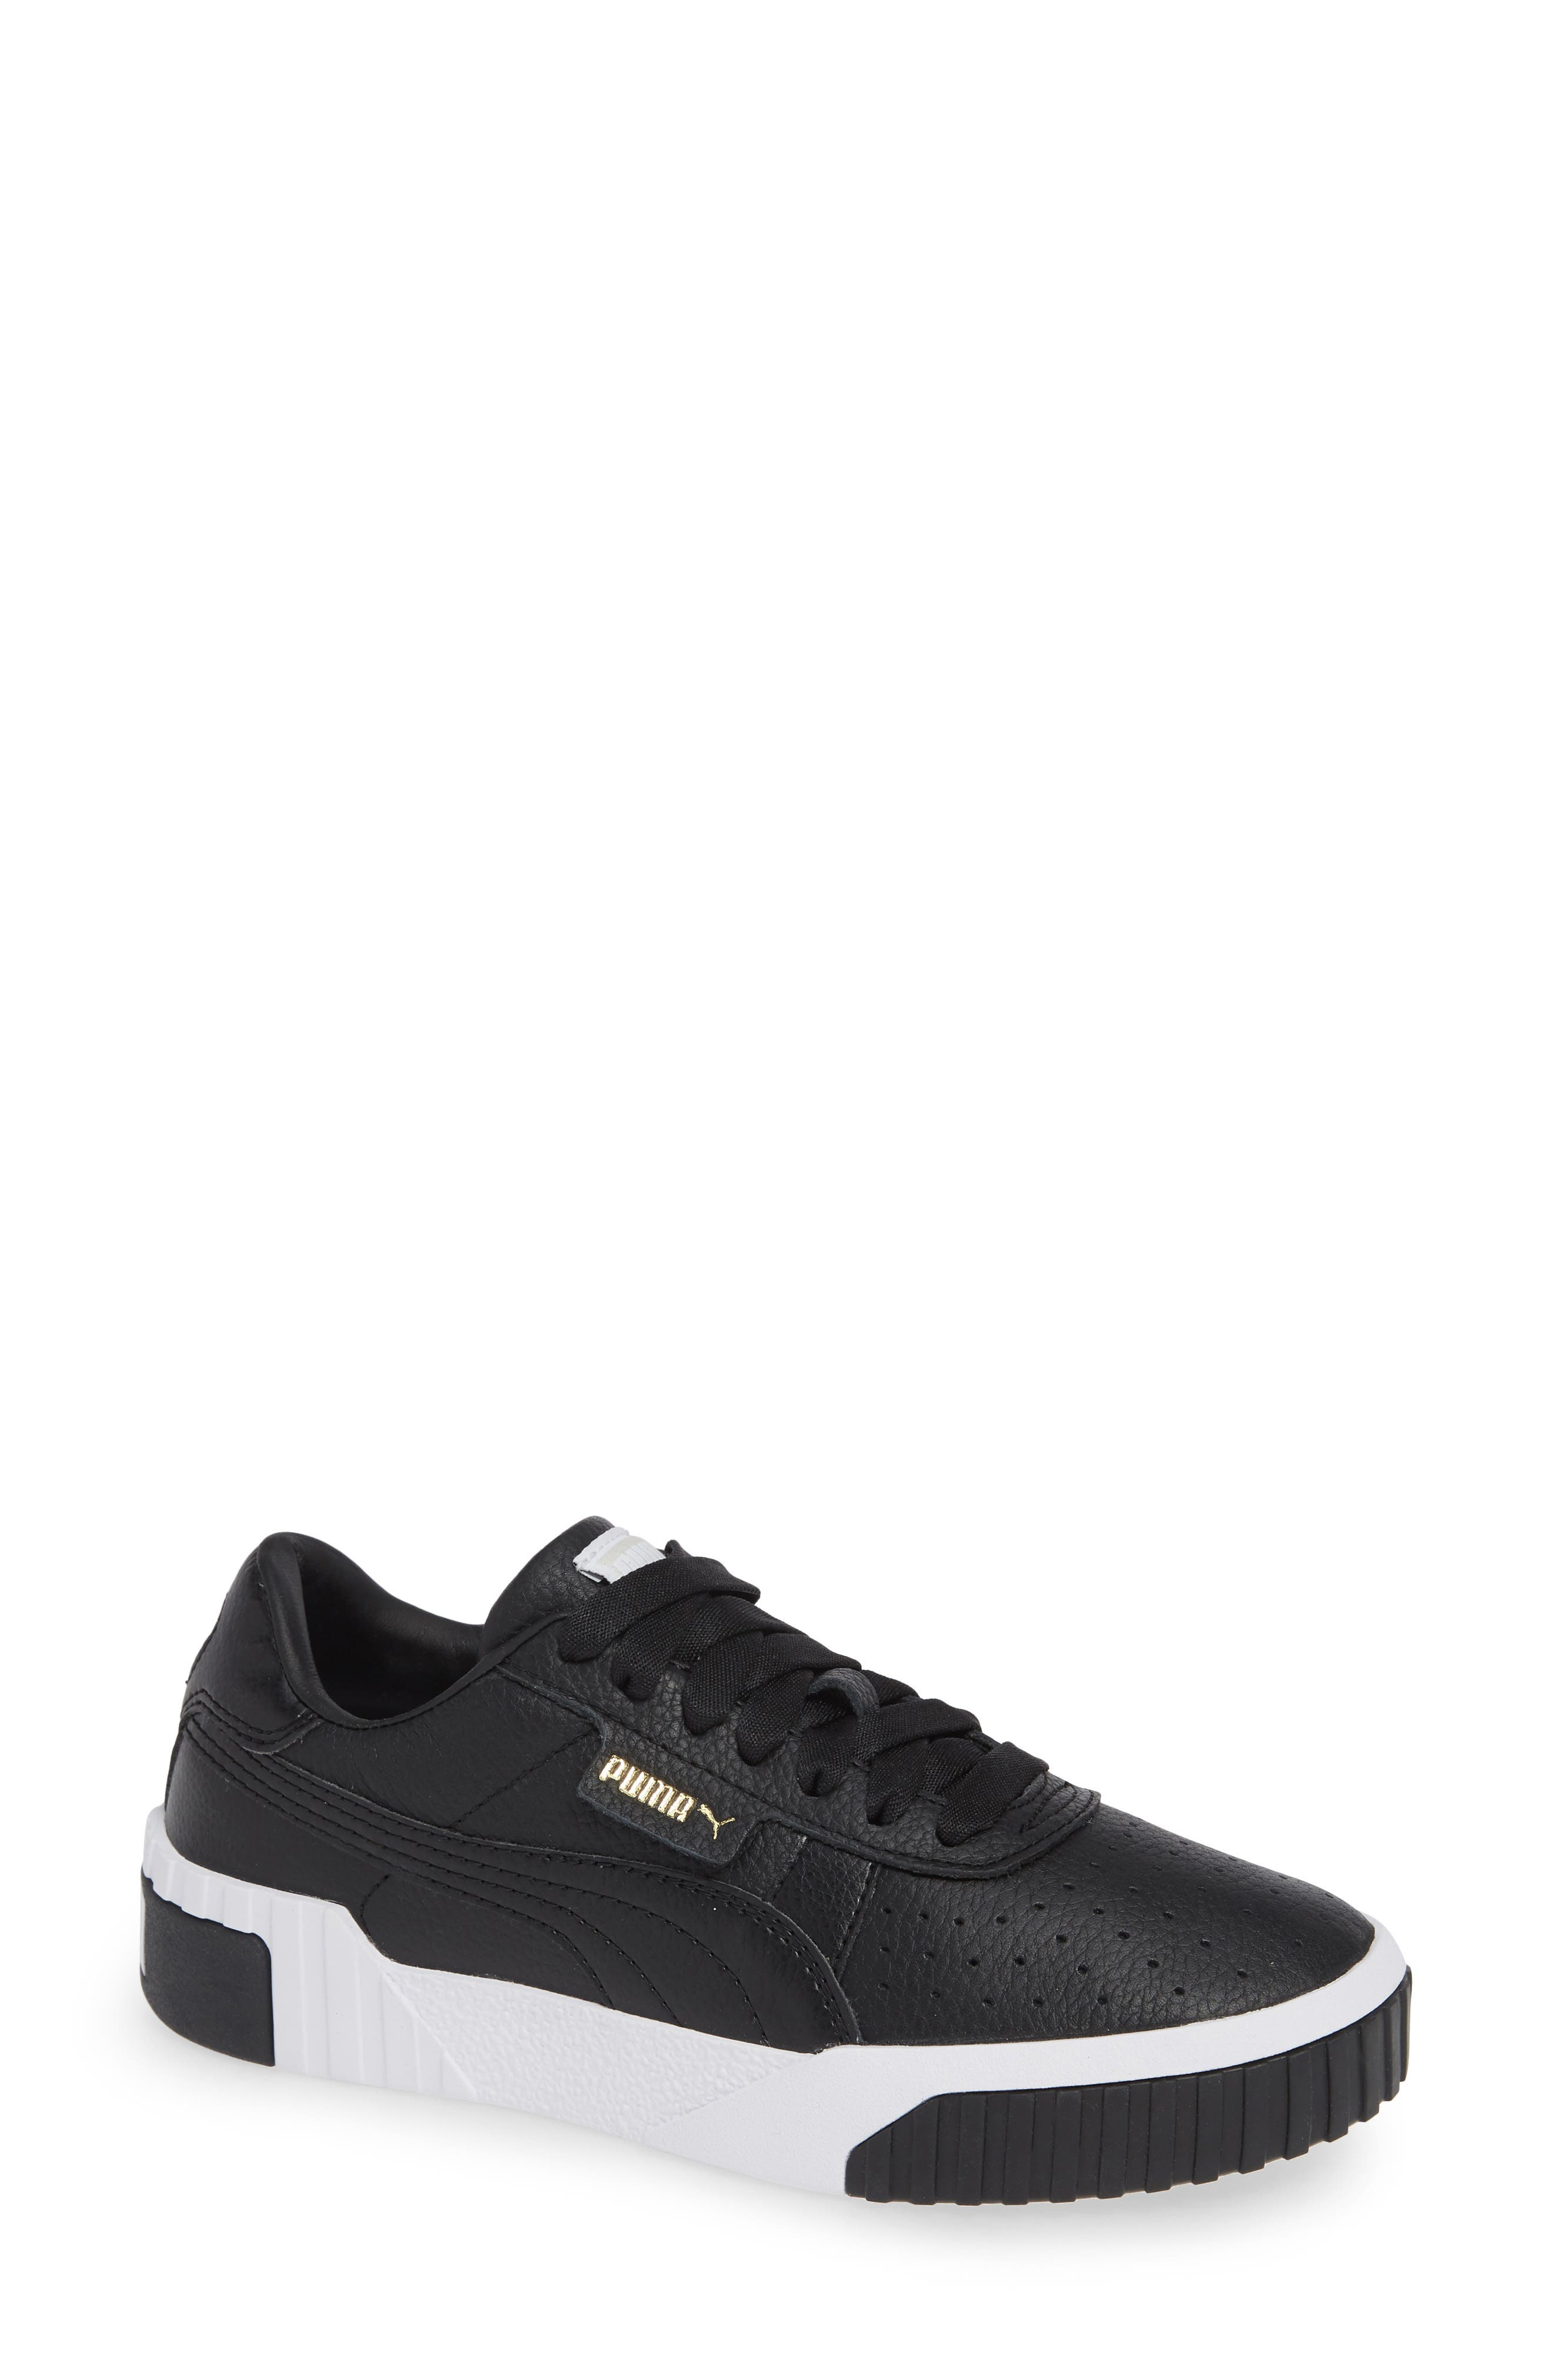 PUMA, Cali Sneaker, Main thumbnail 1, color, PUMA BLACK/ PUMA WHITE